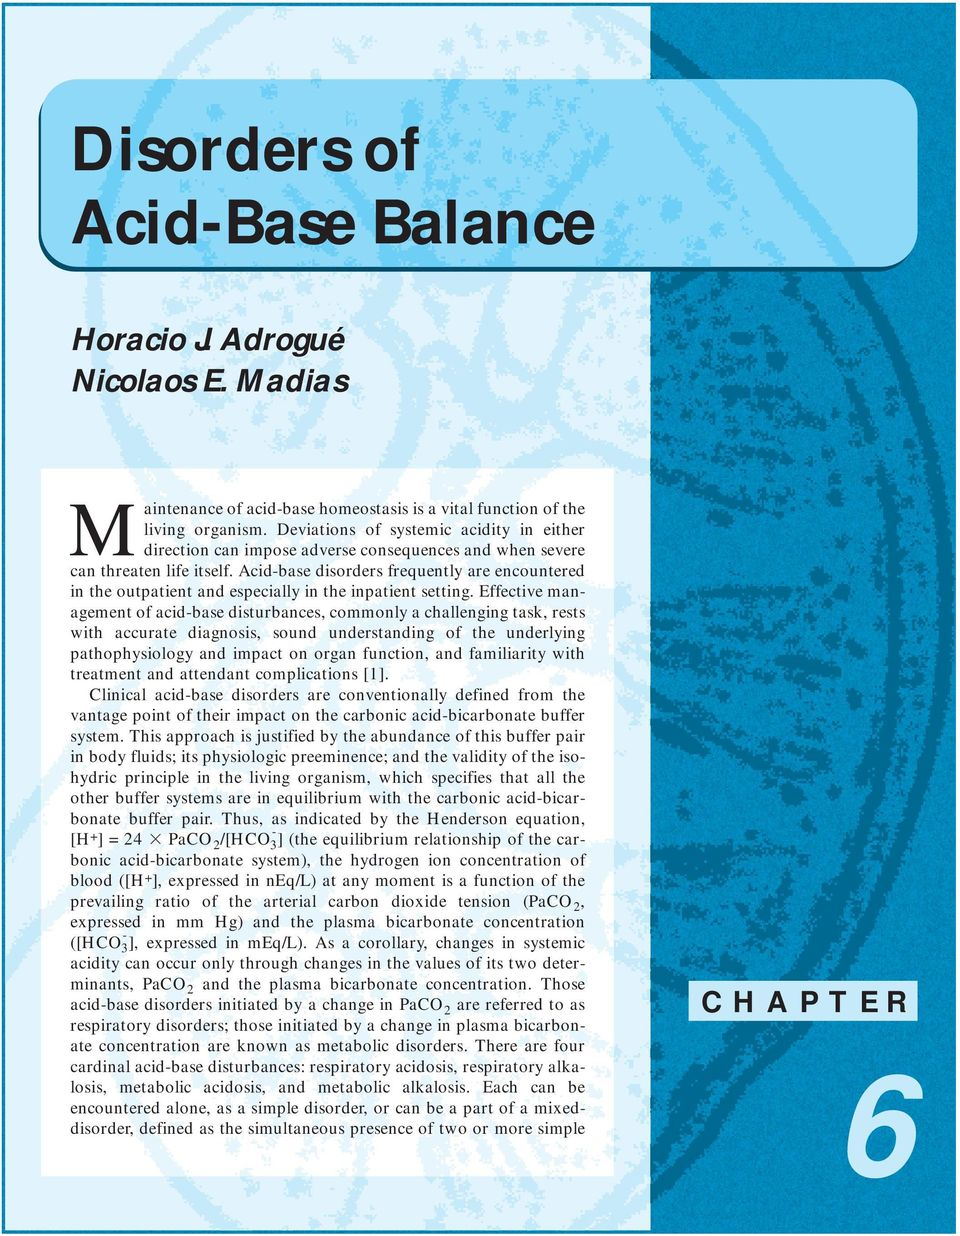 Acid-base disorders frequently are encountered in the outpatient and especially in the inpatient setting.